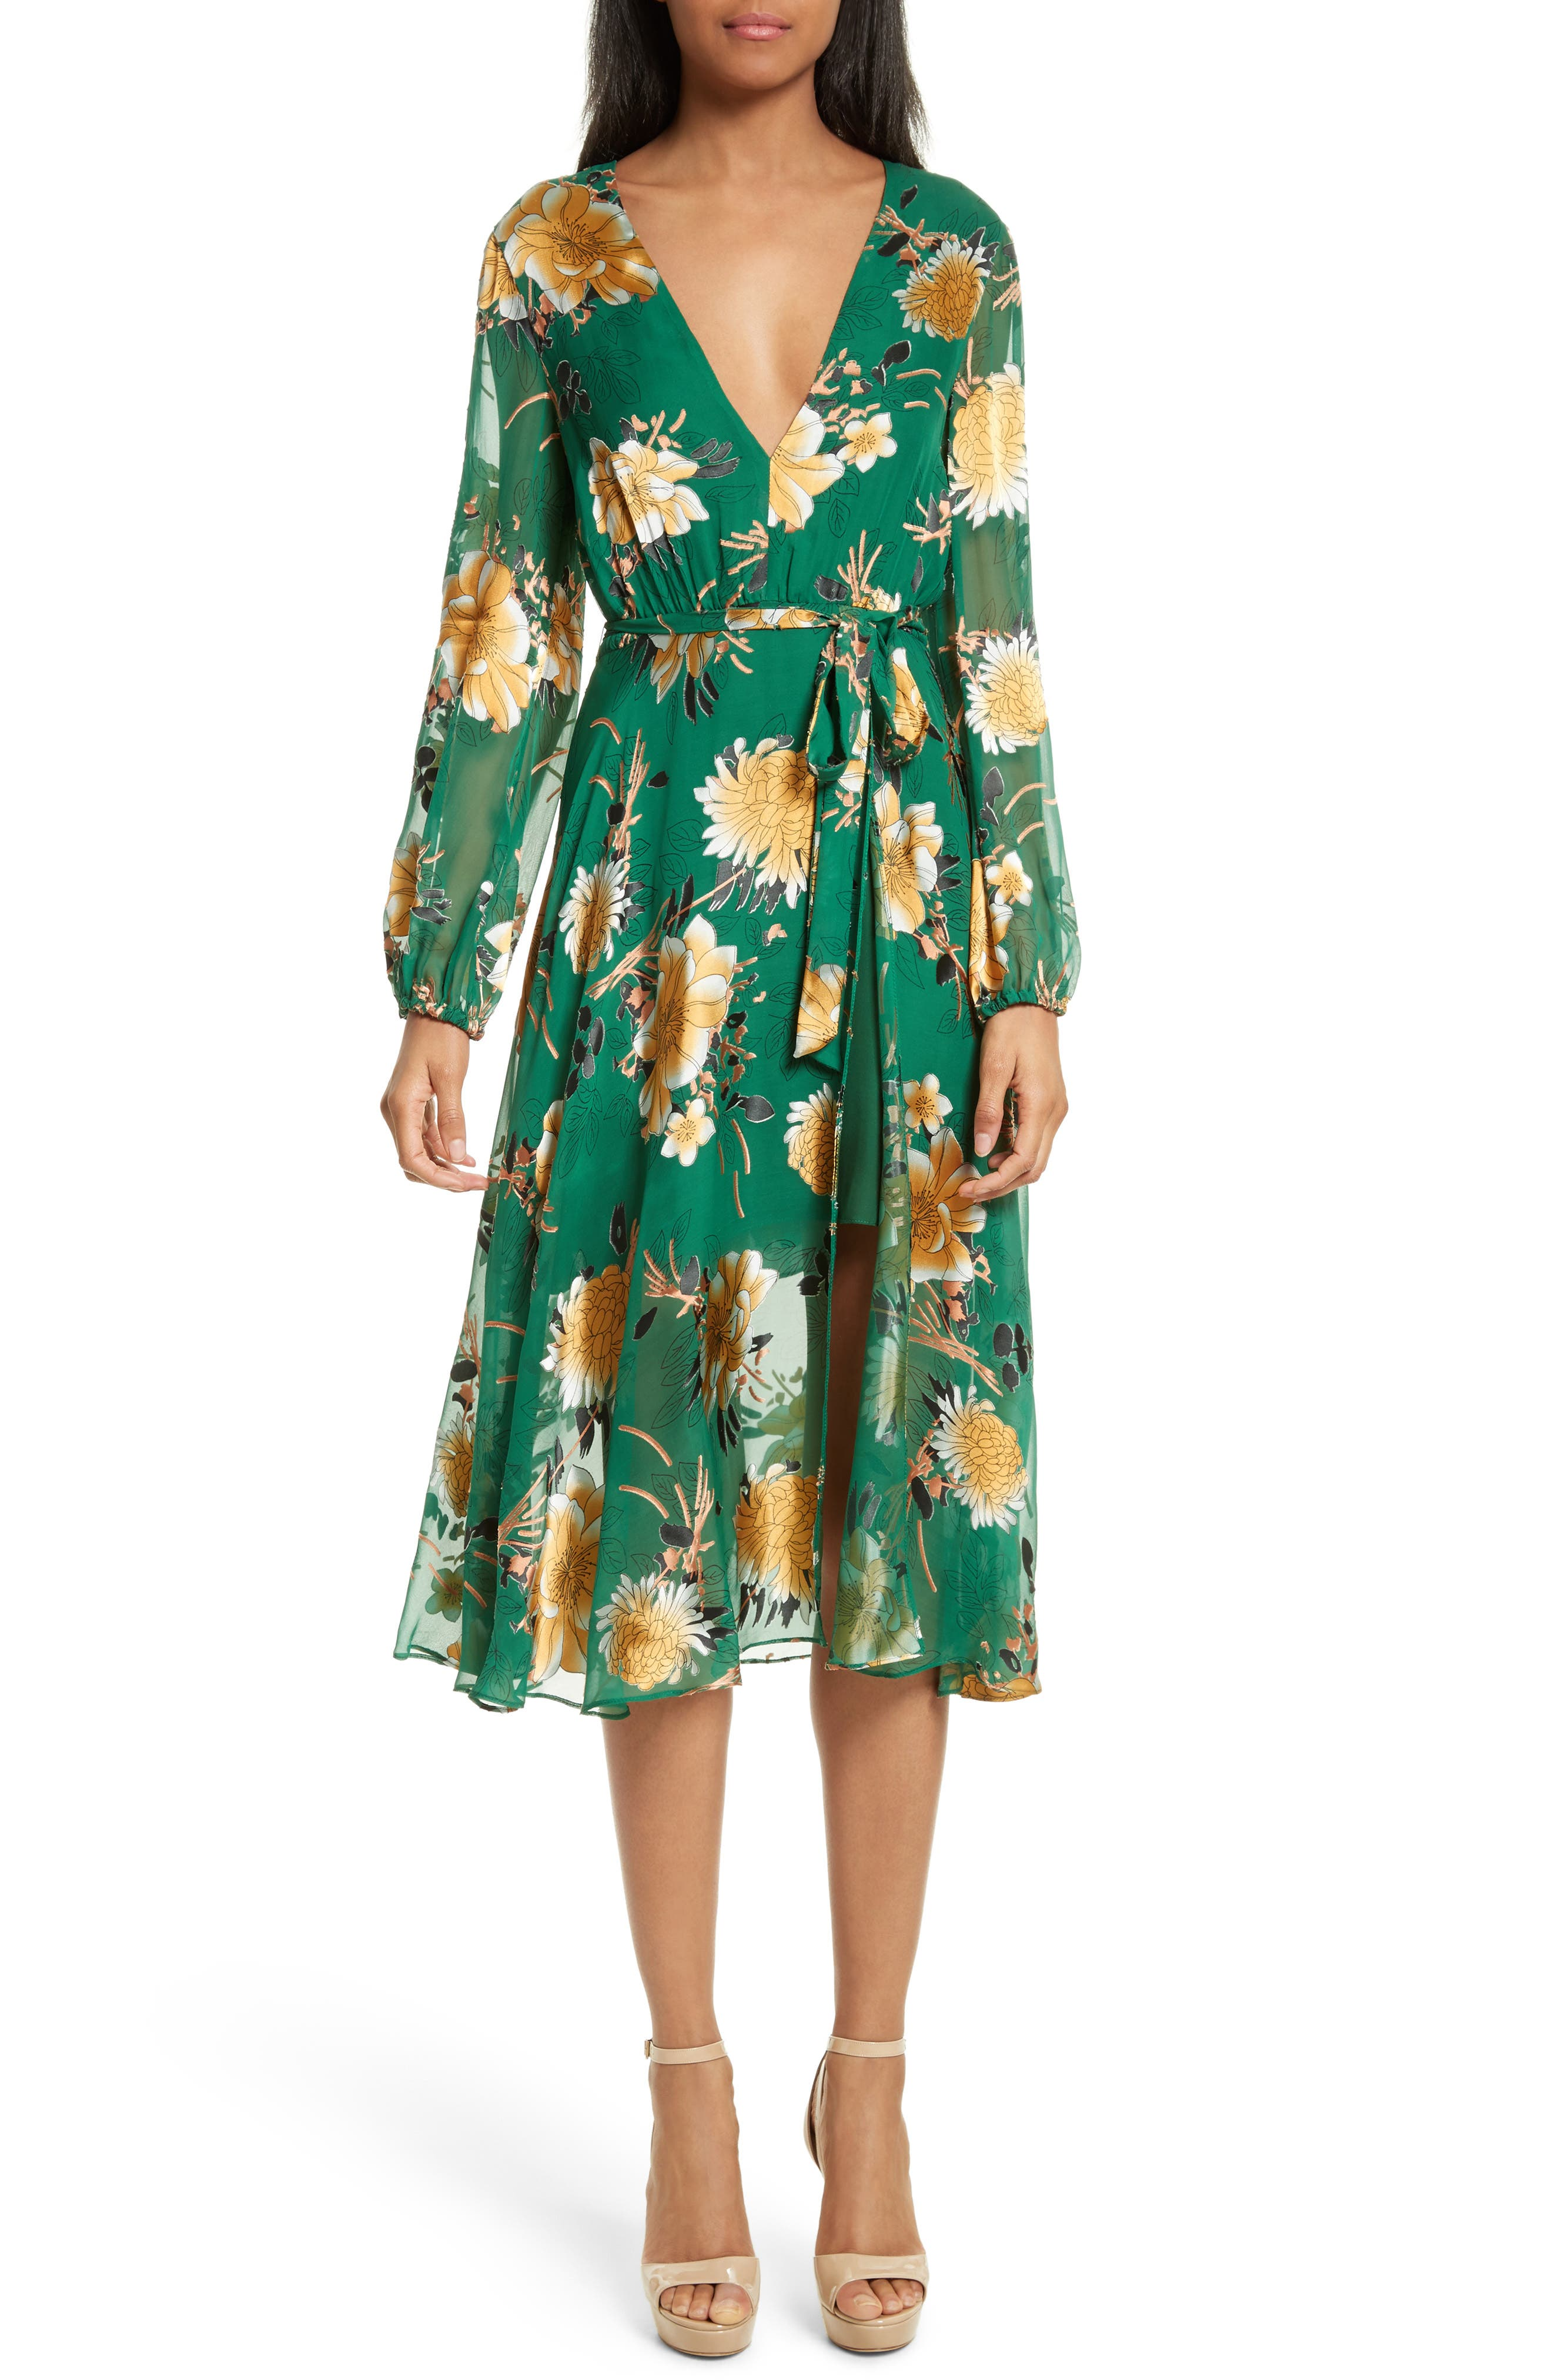 Alternate Image 1 Selected - Alice + Olivia Coco Floral Print A-Line Dress